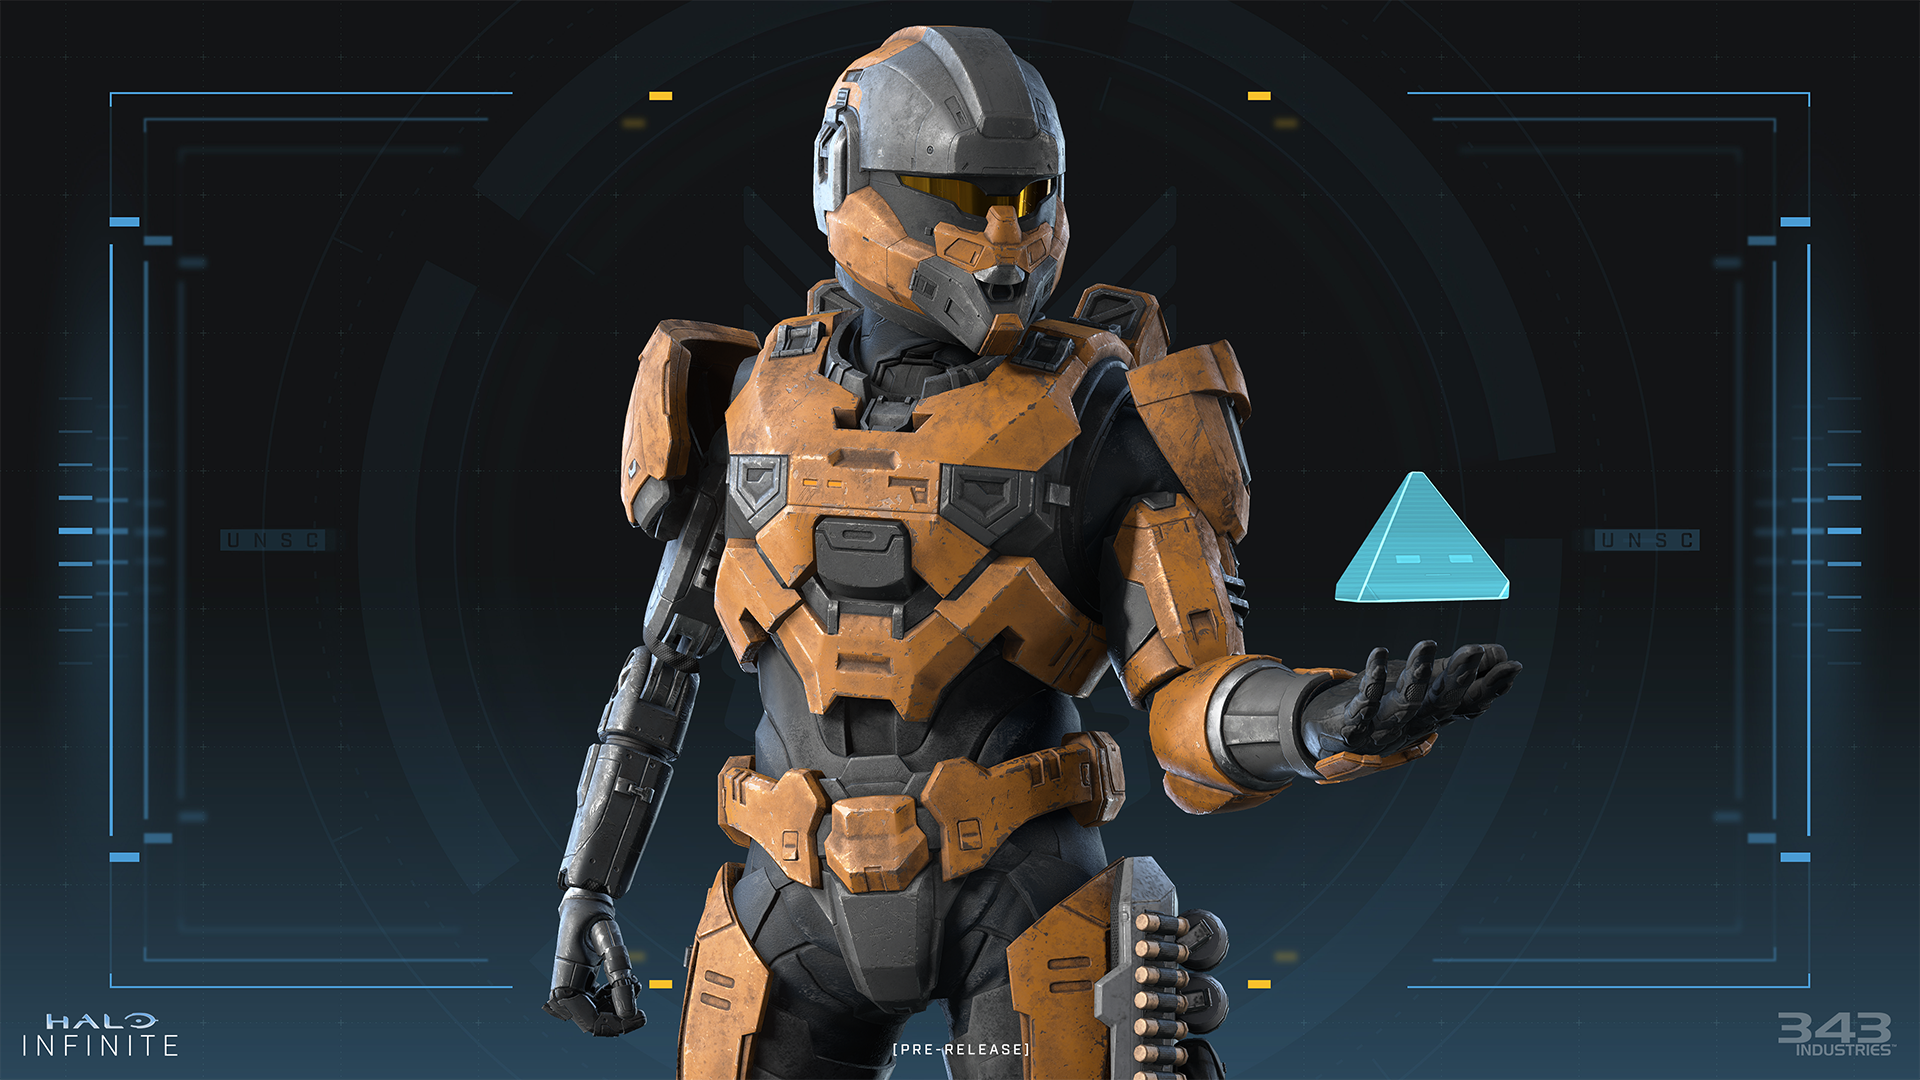 Render of an orange Spartan IV holding up a Fret Personal AI on a dark UNSC background